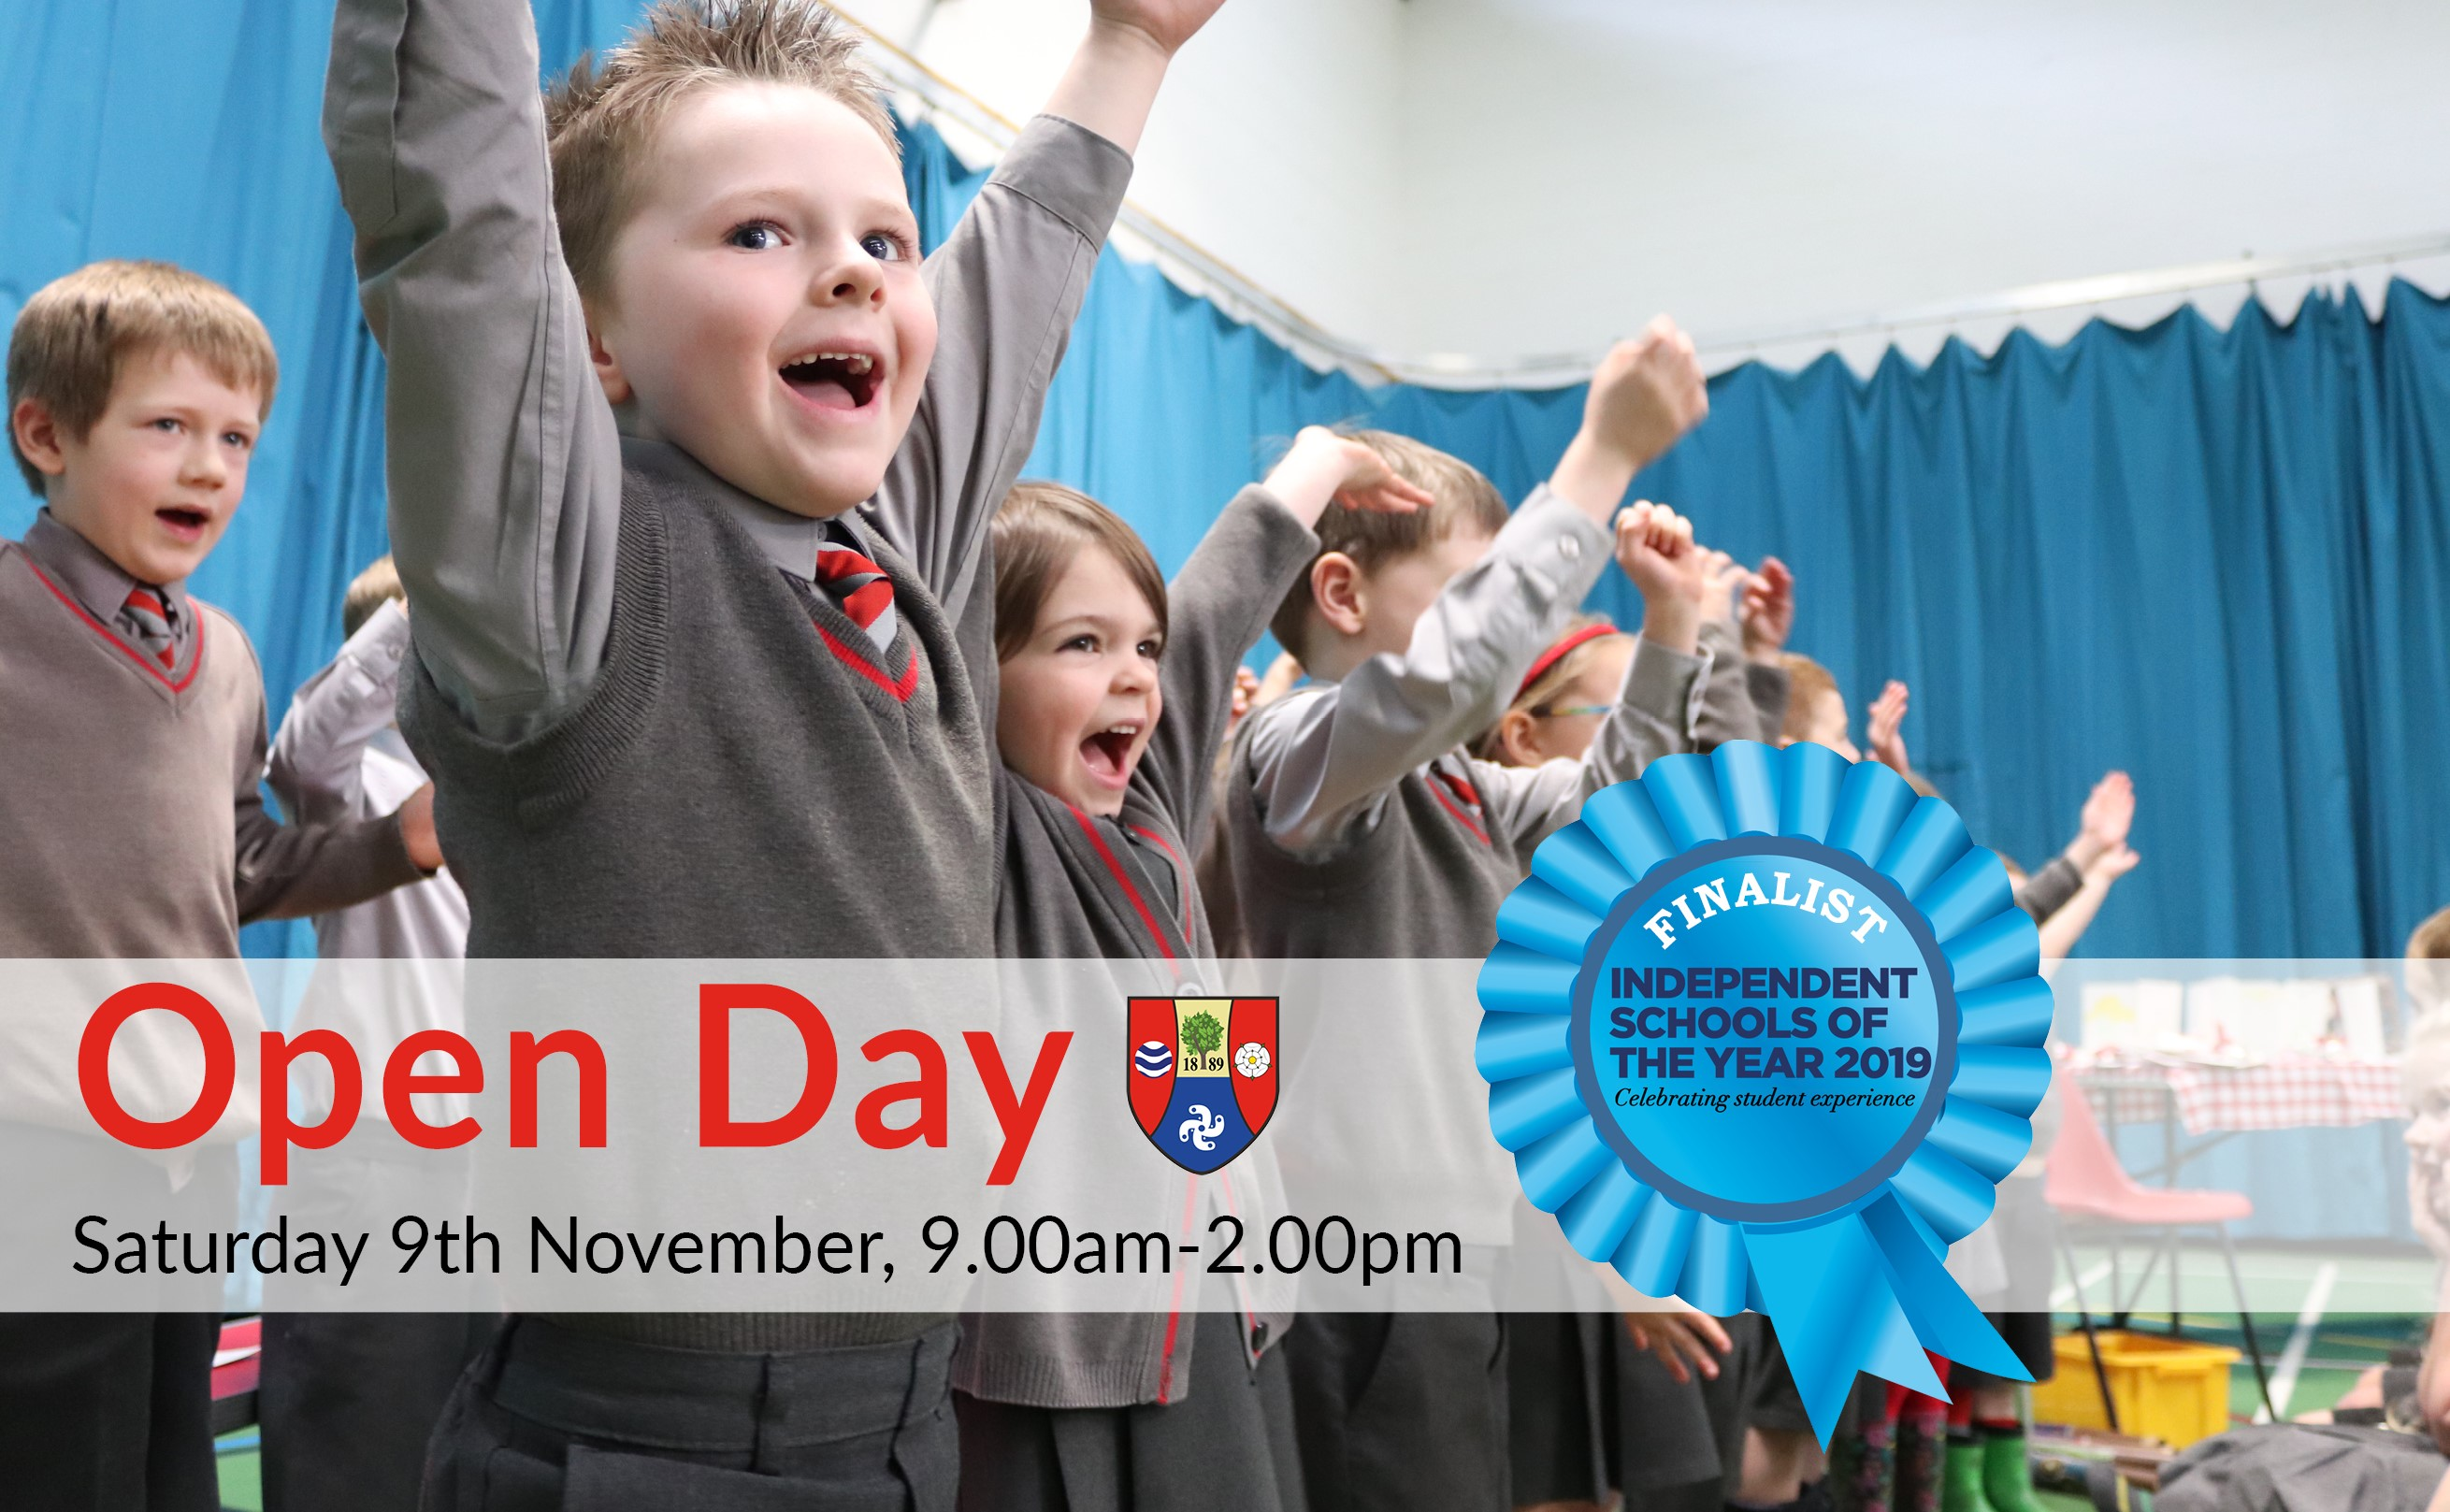 Independent School Open Day poster